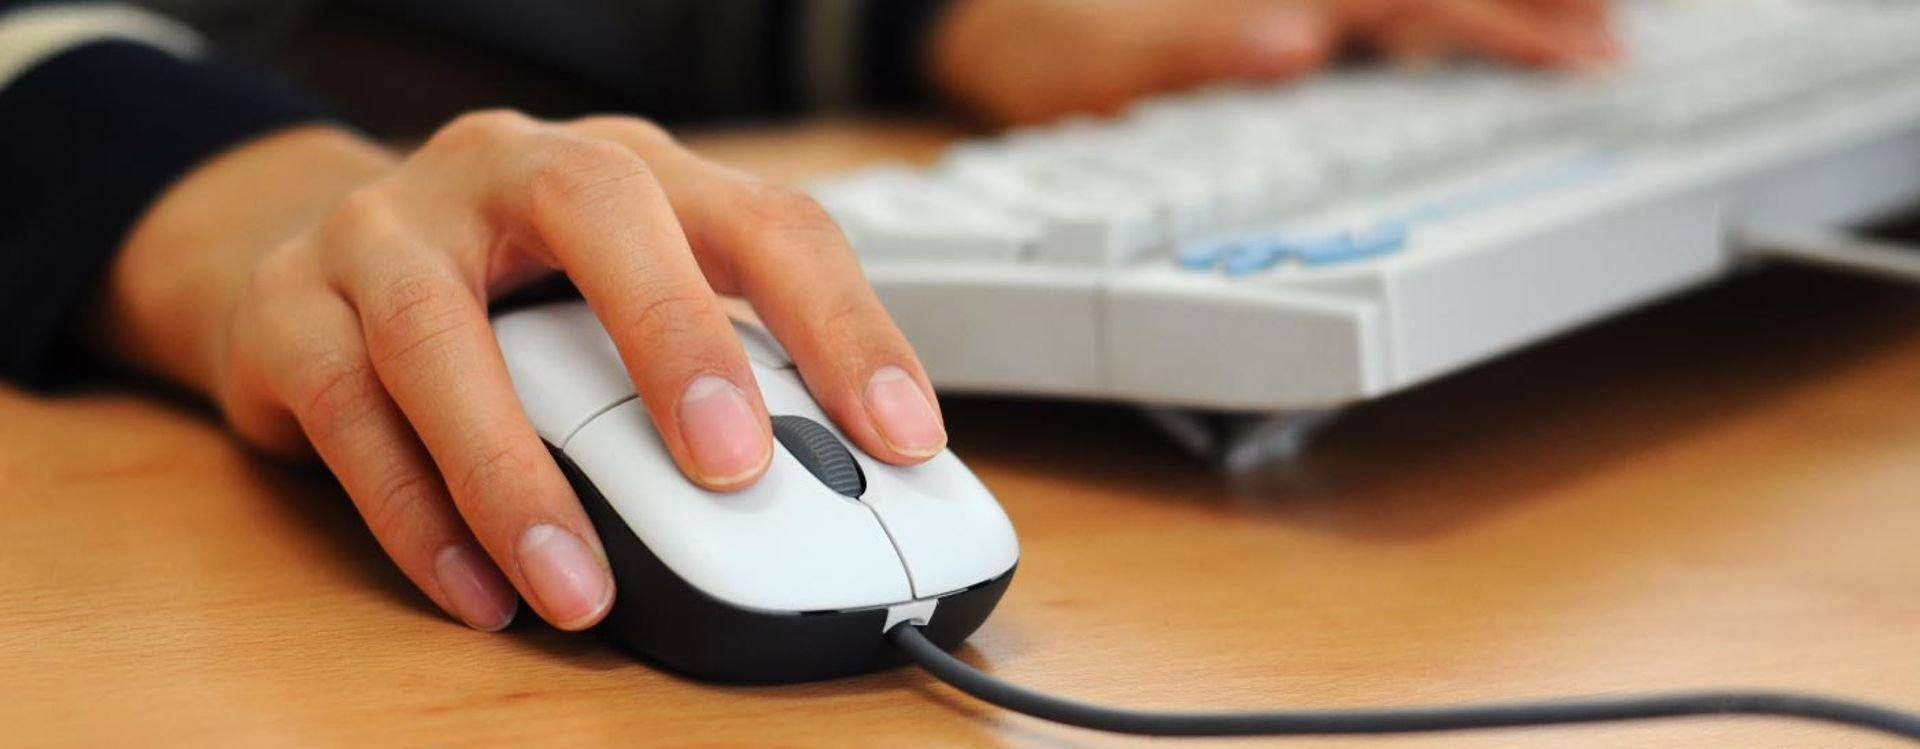 Mouse is one of the most essential input devices for computers and so choosing the right one is important.